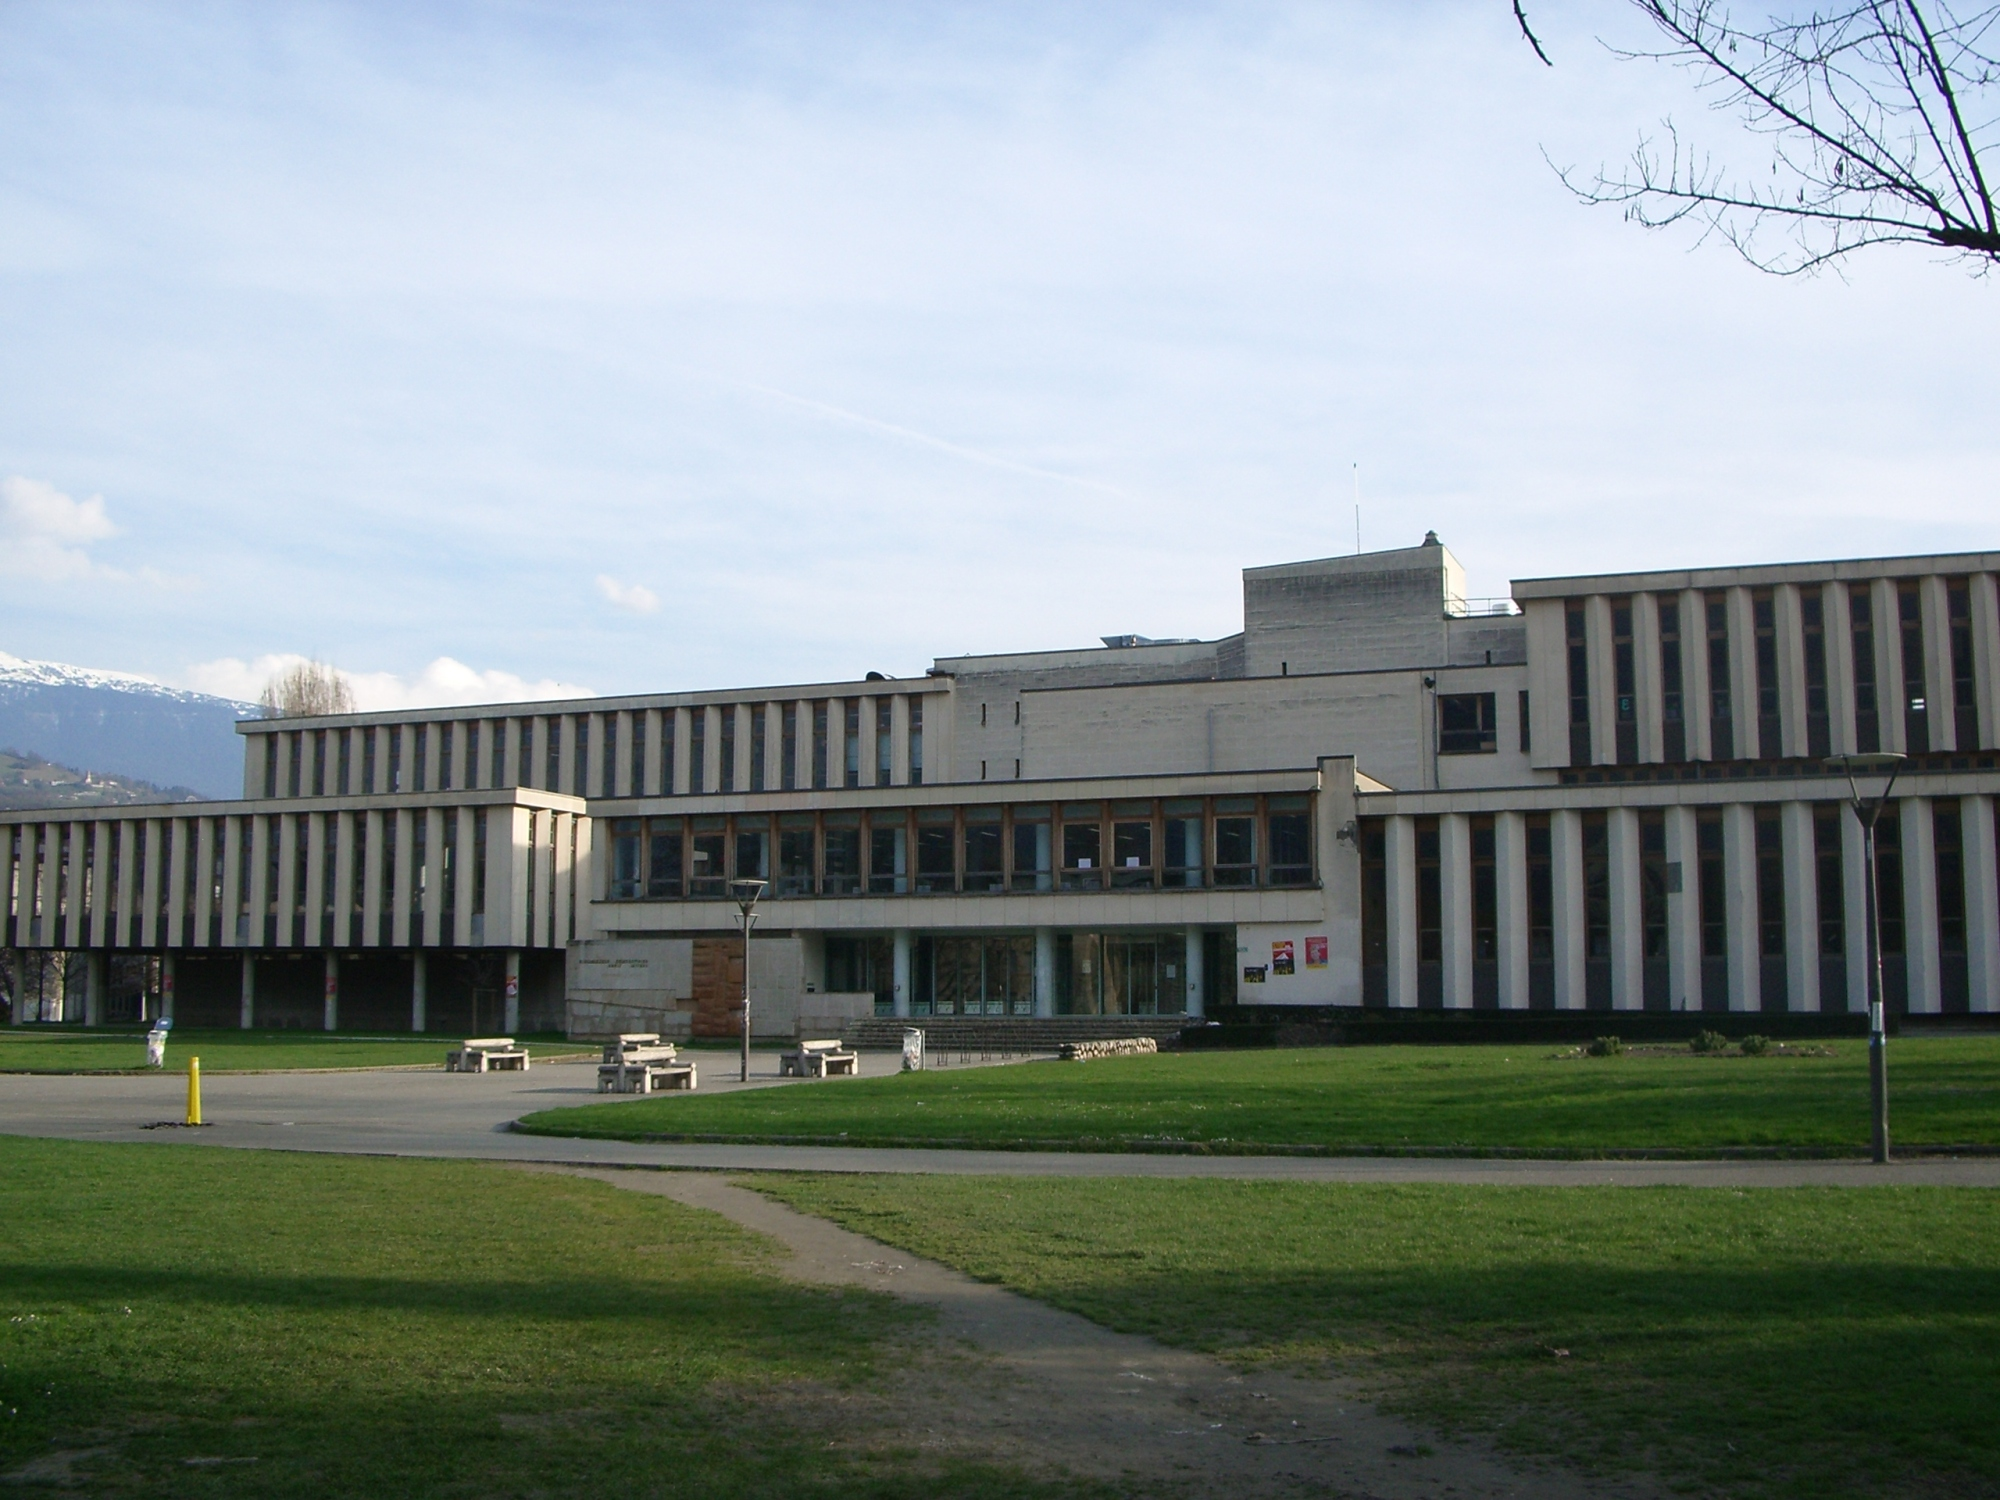 Grenoble University Library (outside view)